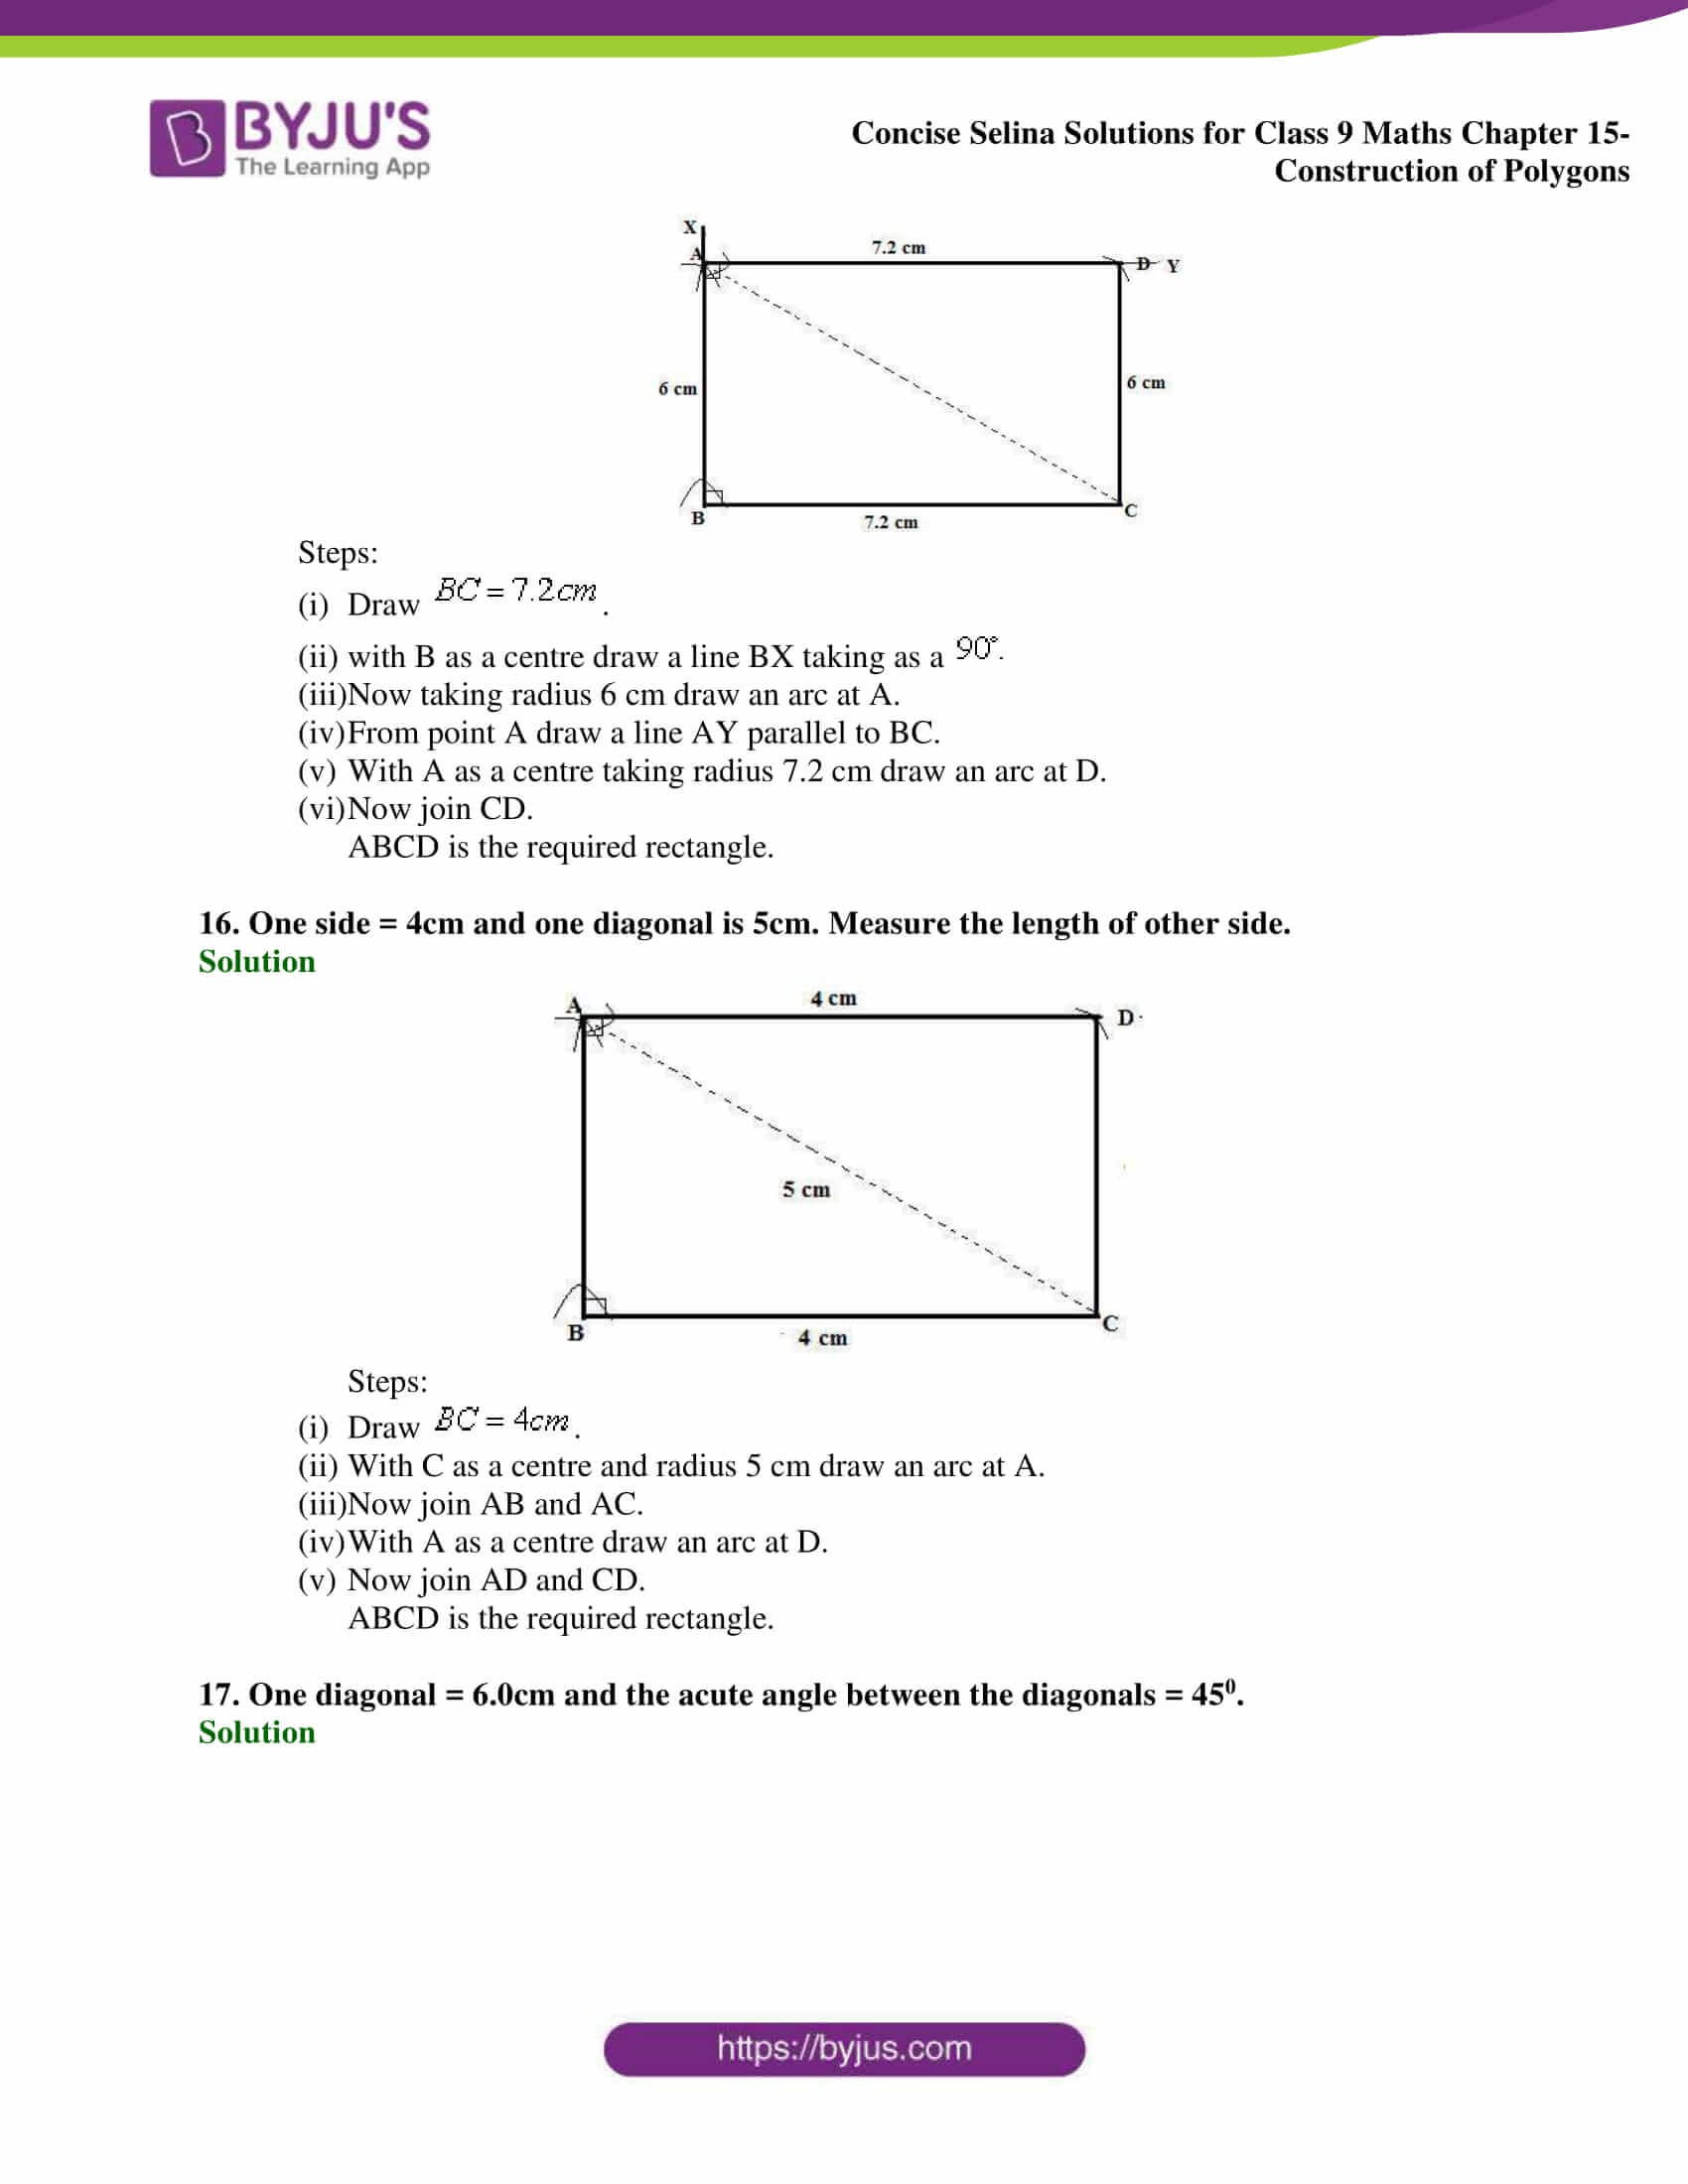 selina Solutions for Class 9 Maths Chapter 15 part 08